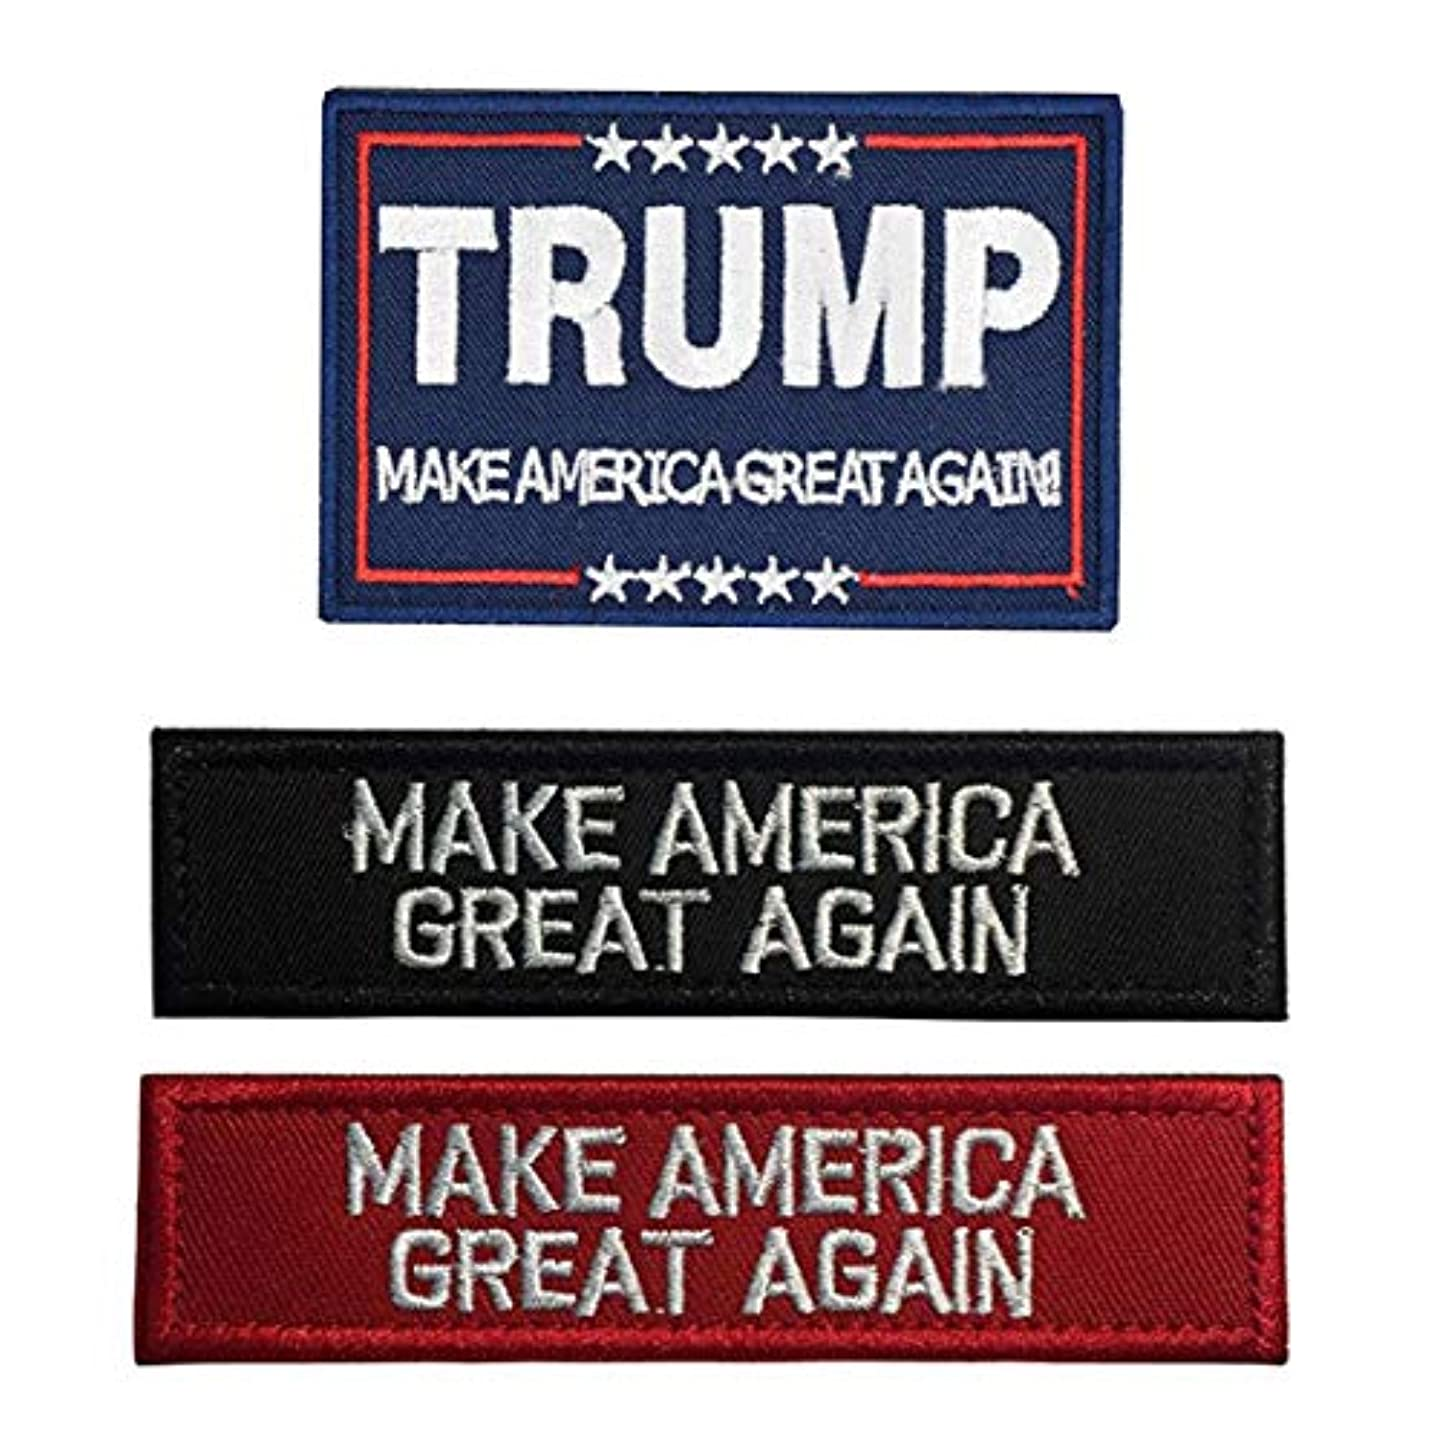 Antrix 3 Pack Trump Make America Great Again/Make America Great Again Hook & Loop Tactical Military Morale Badge Patches